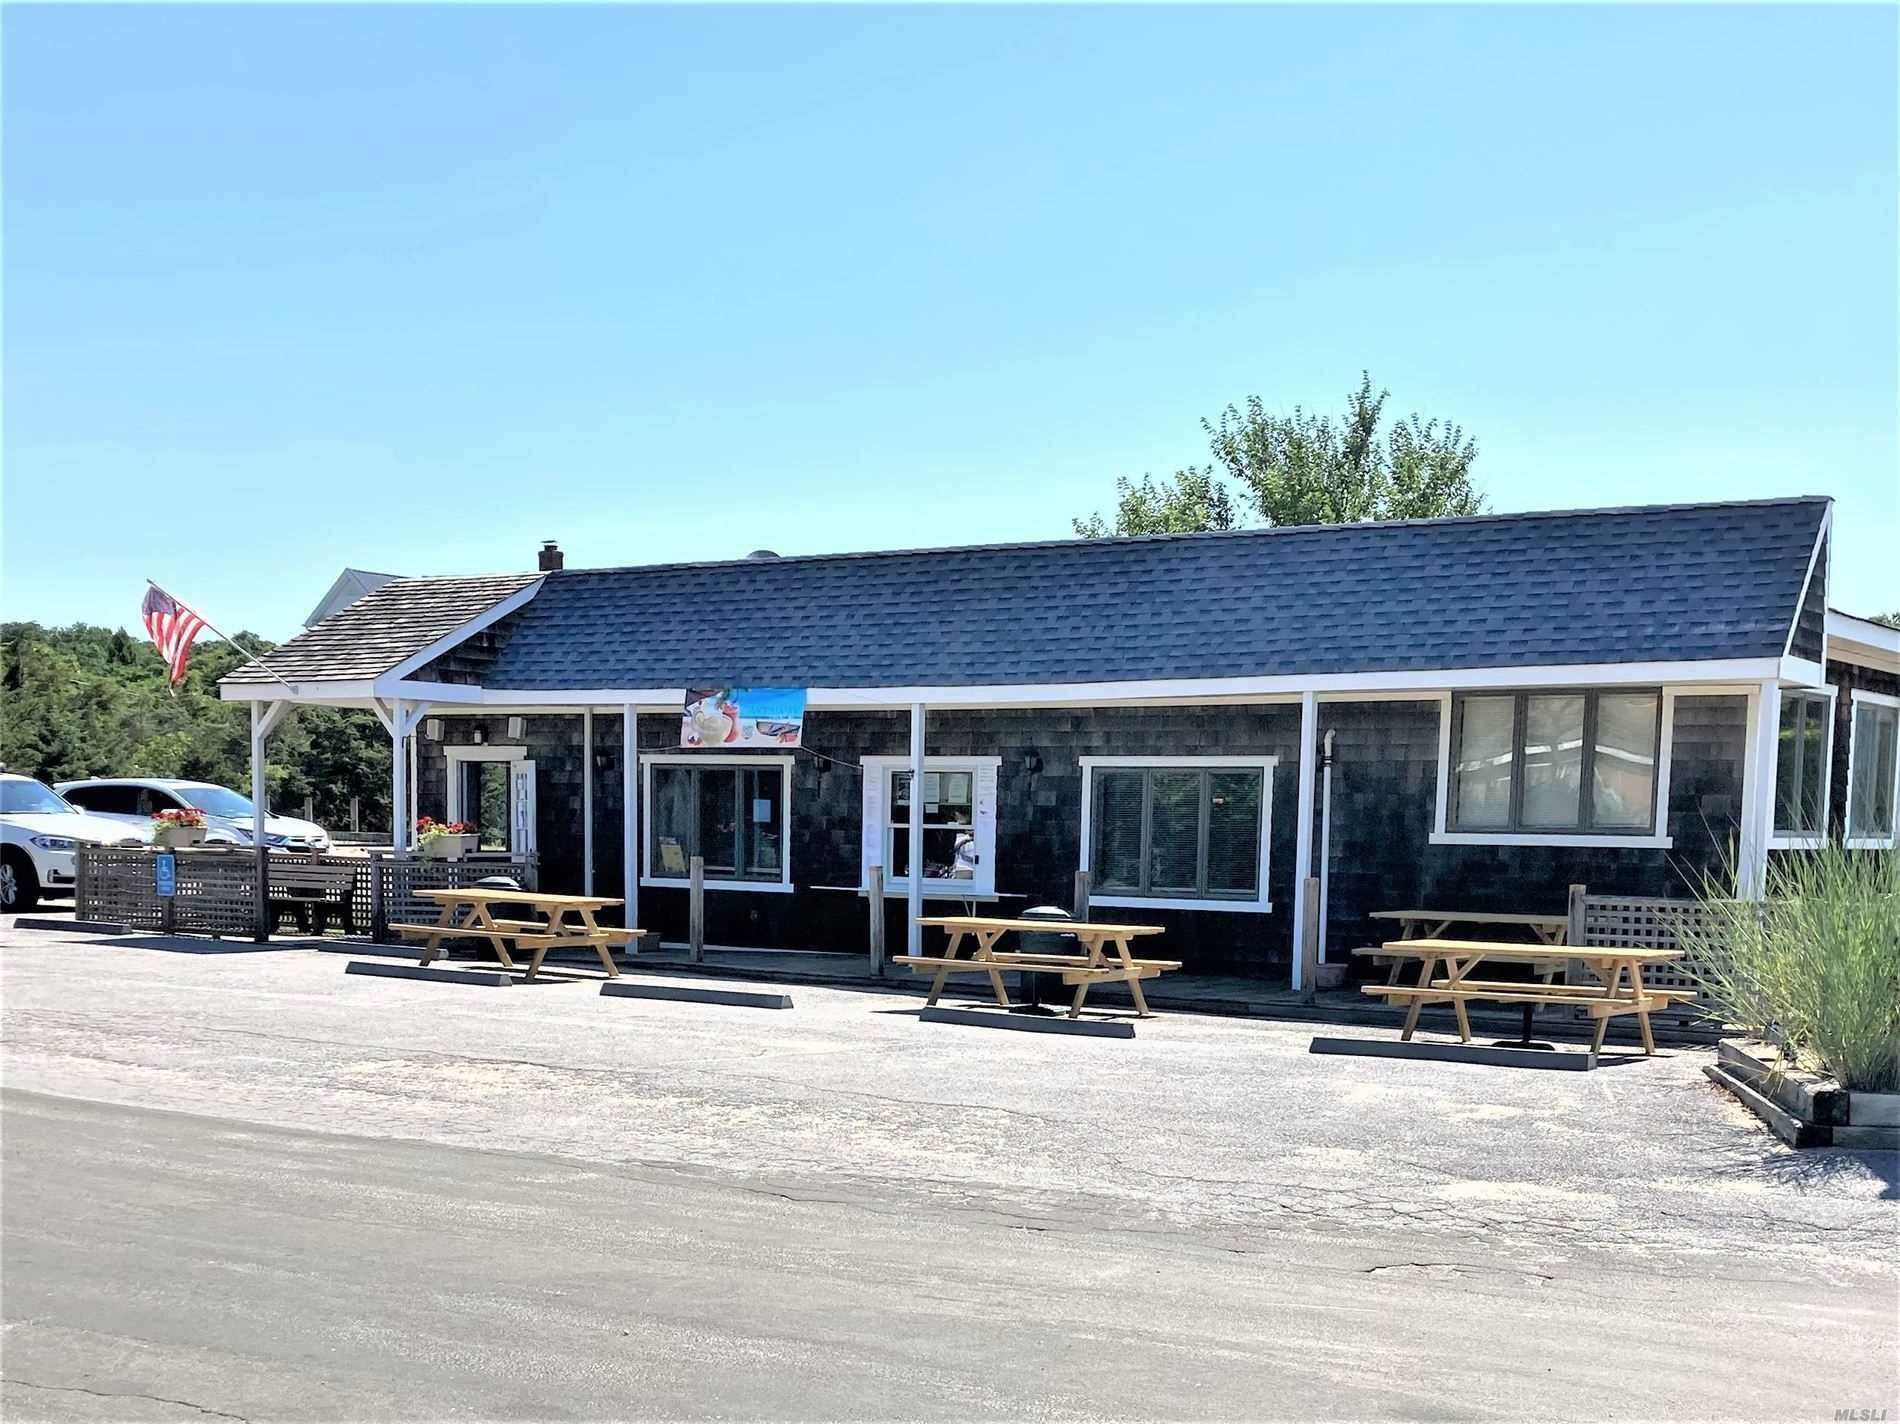 Business Opportunity for Sale at 50 N Sea Drive, Southold, NY 11971 Southold, New York 11971 United States